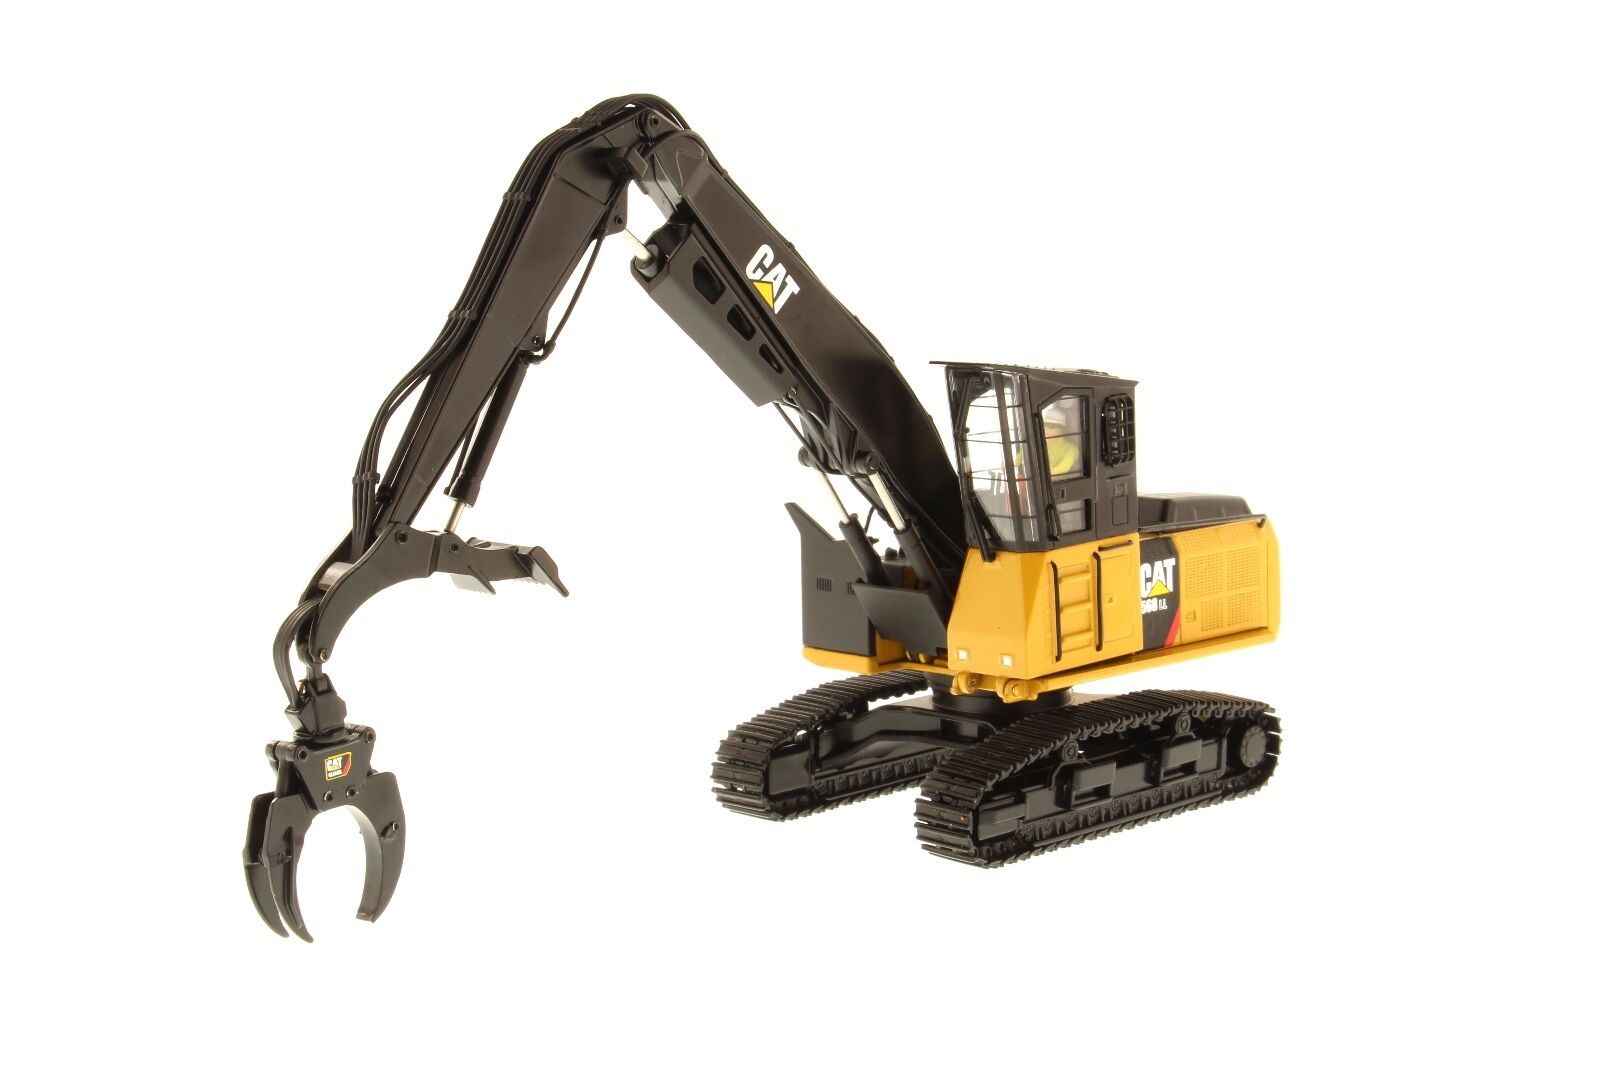 Caterpillar® 1 50 scale Cat 568 LL Log Loader Configuration - 85922 DM